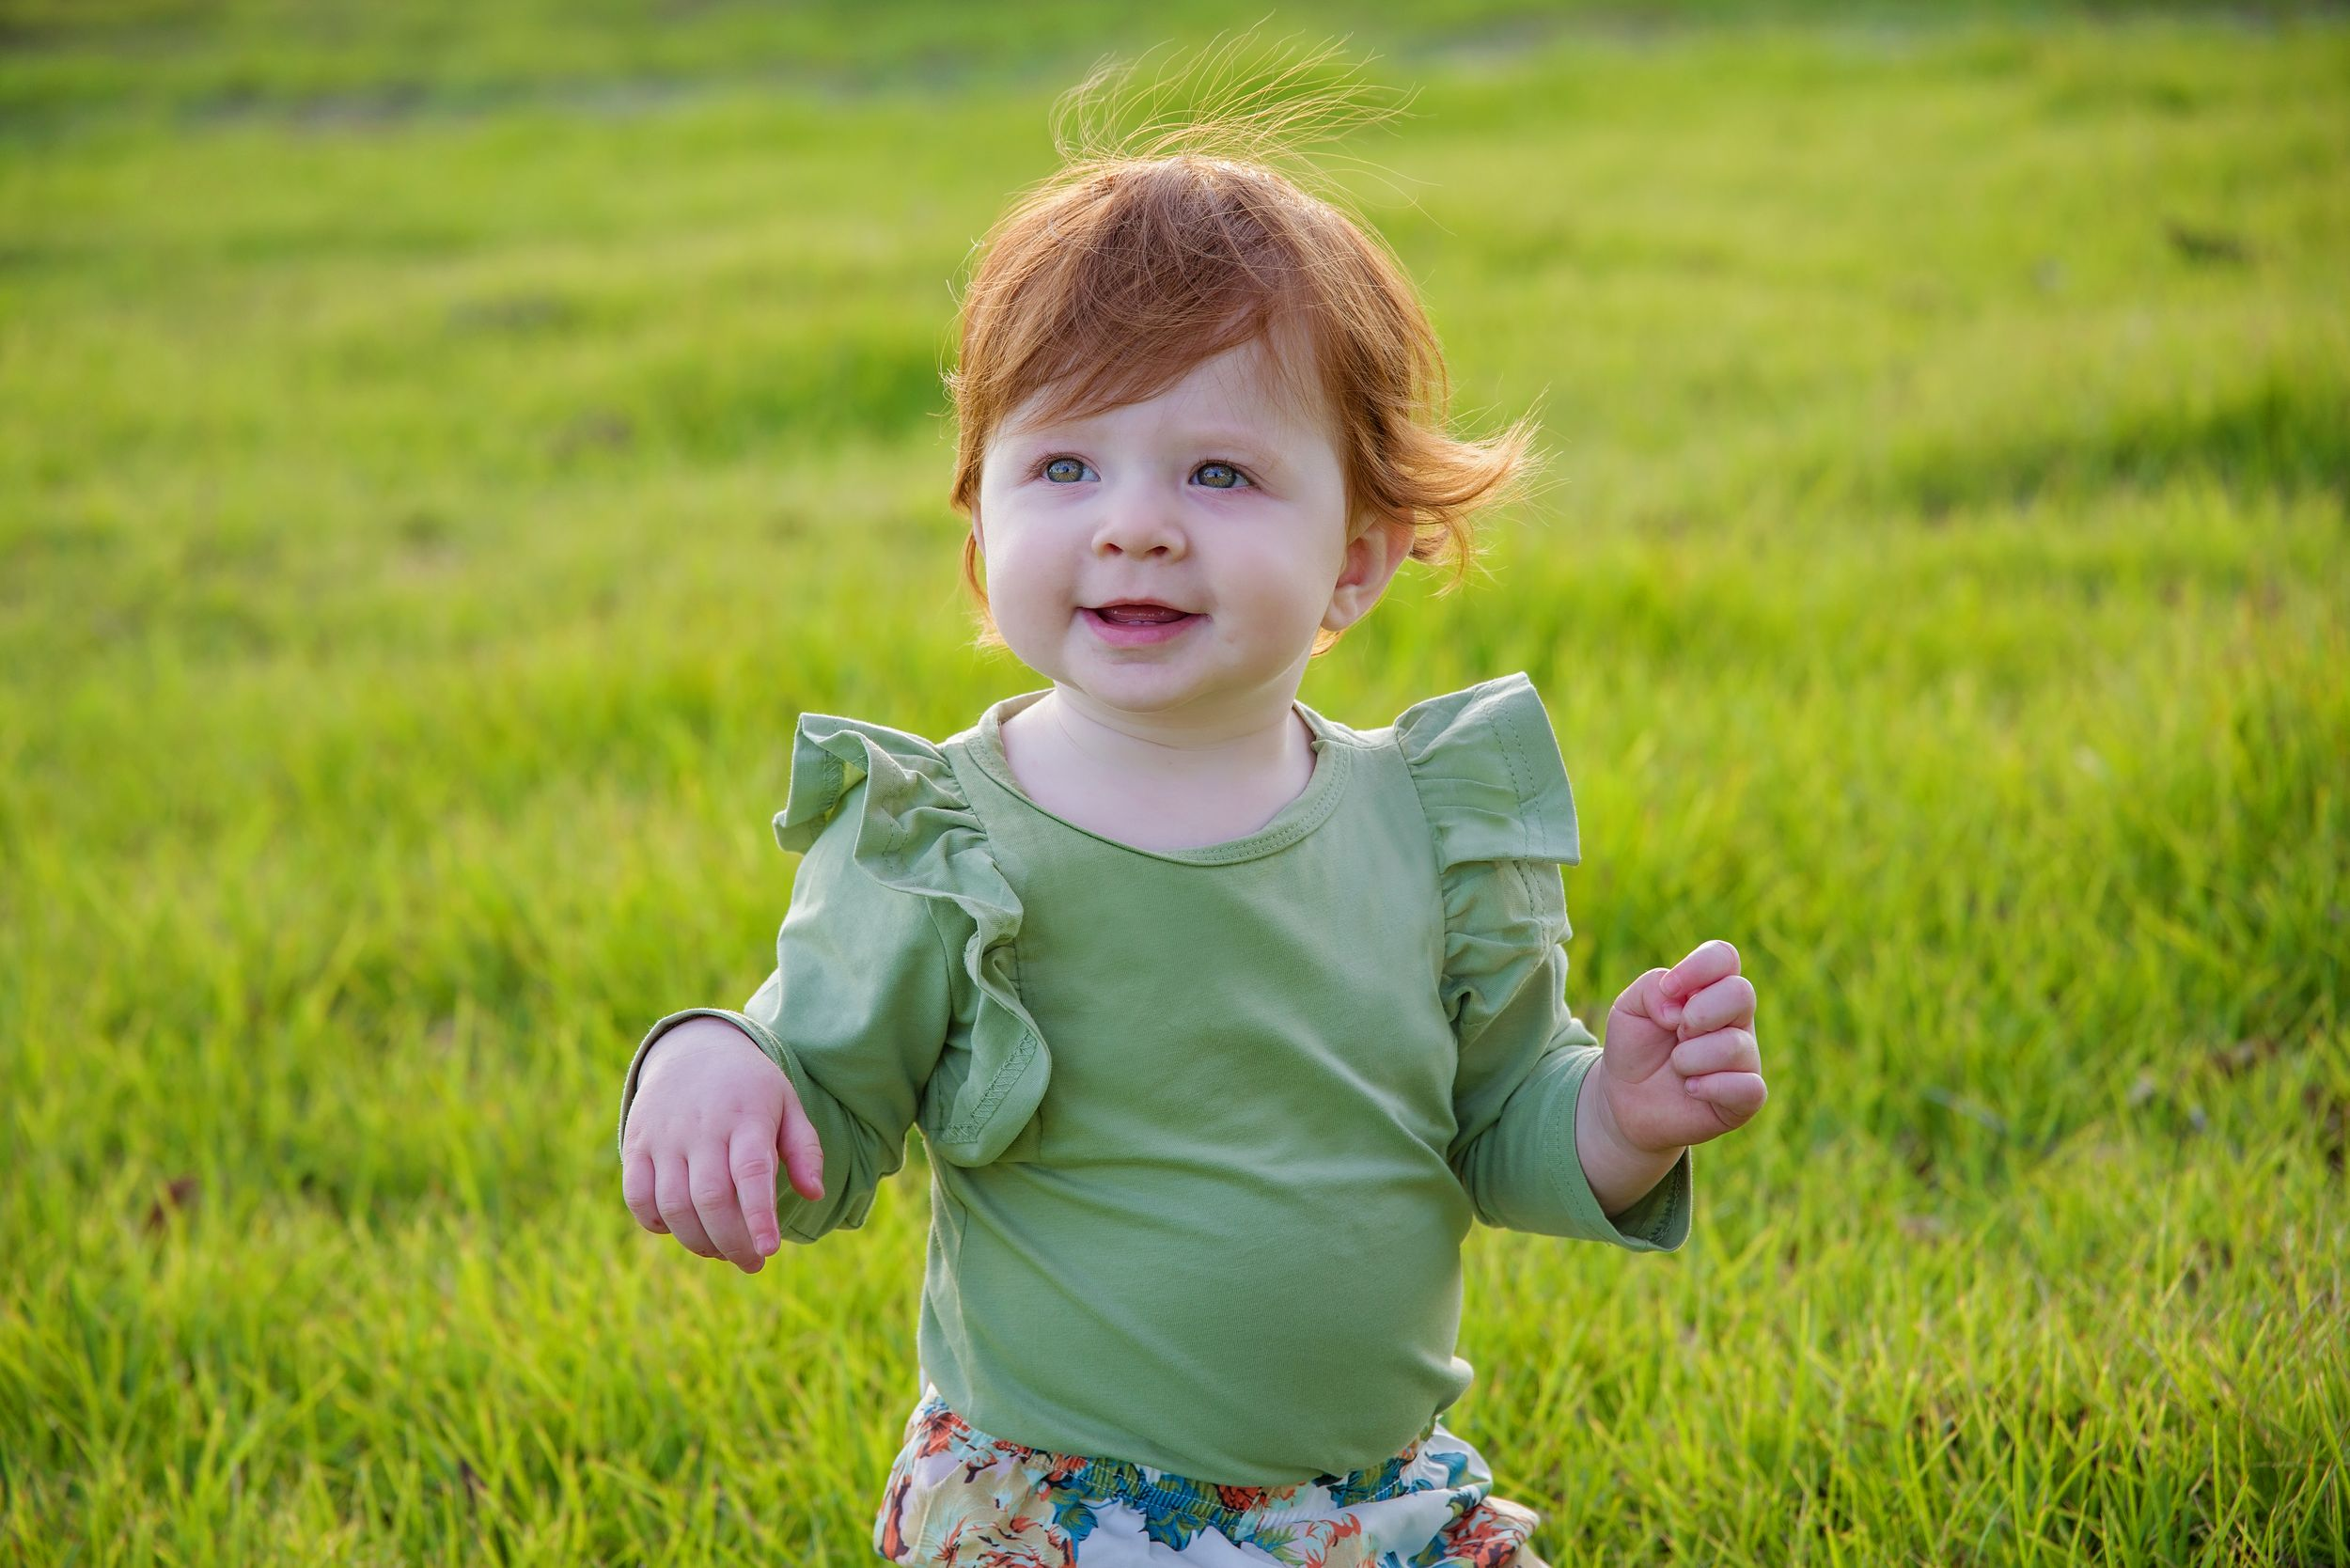 red headed baby sitting in greenery